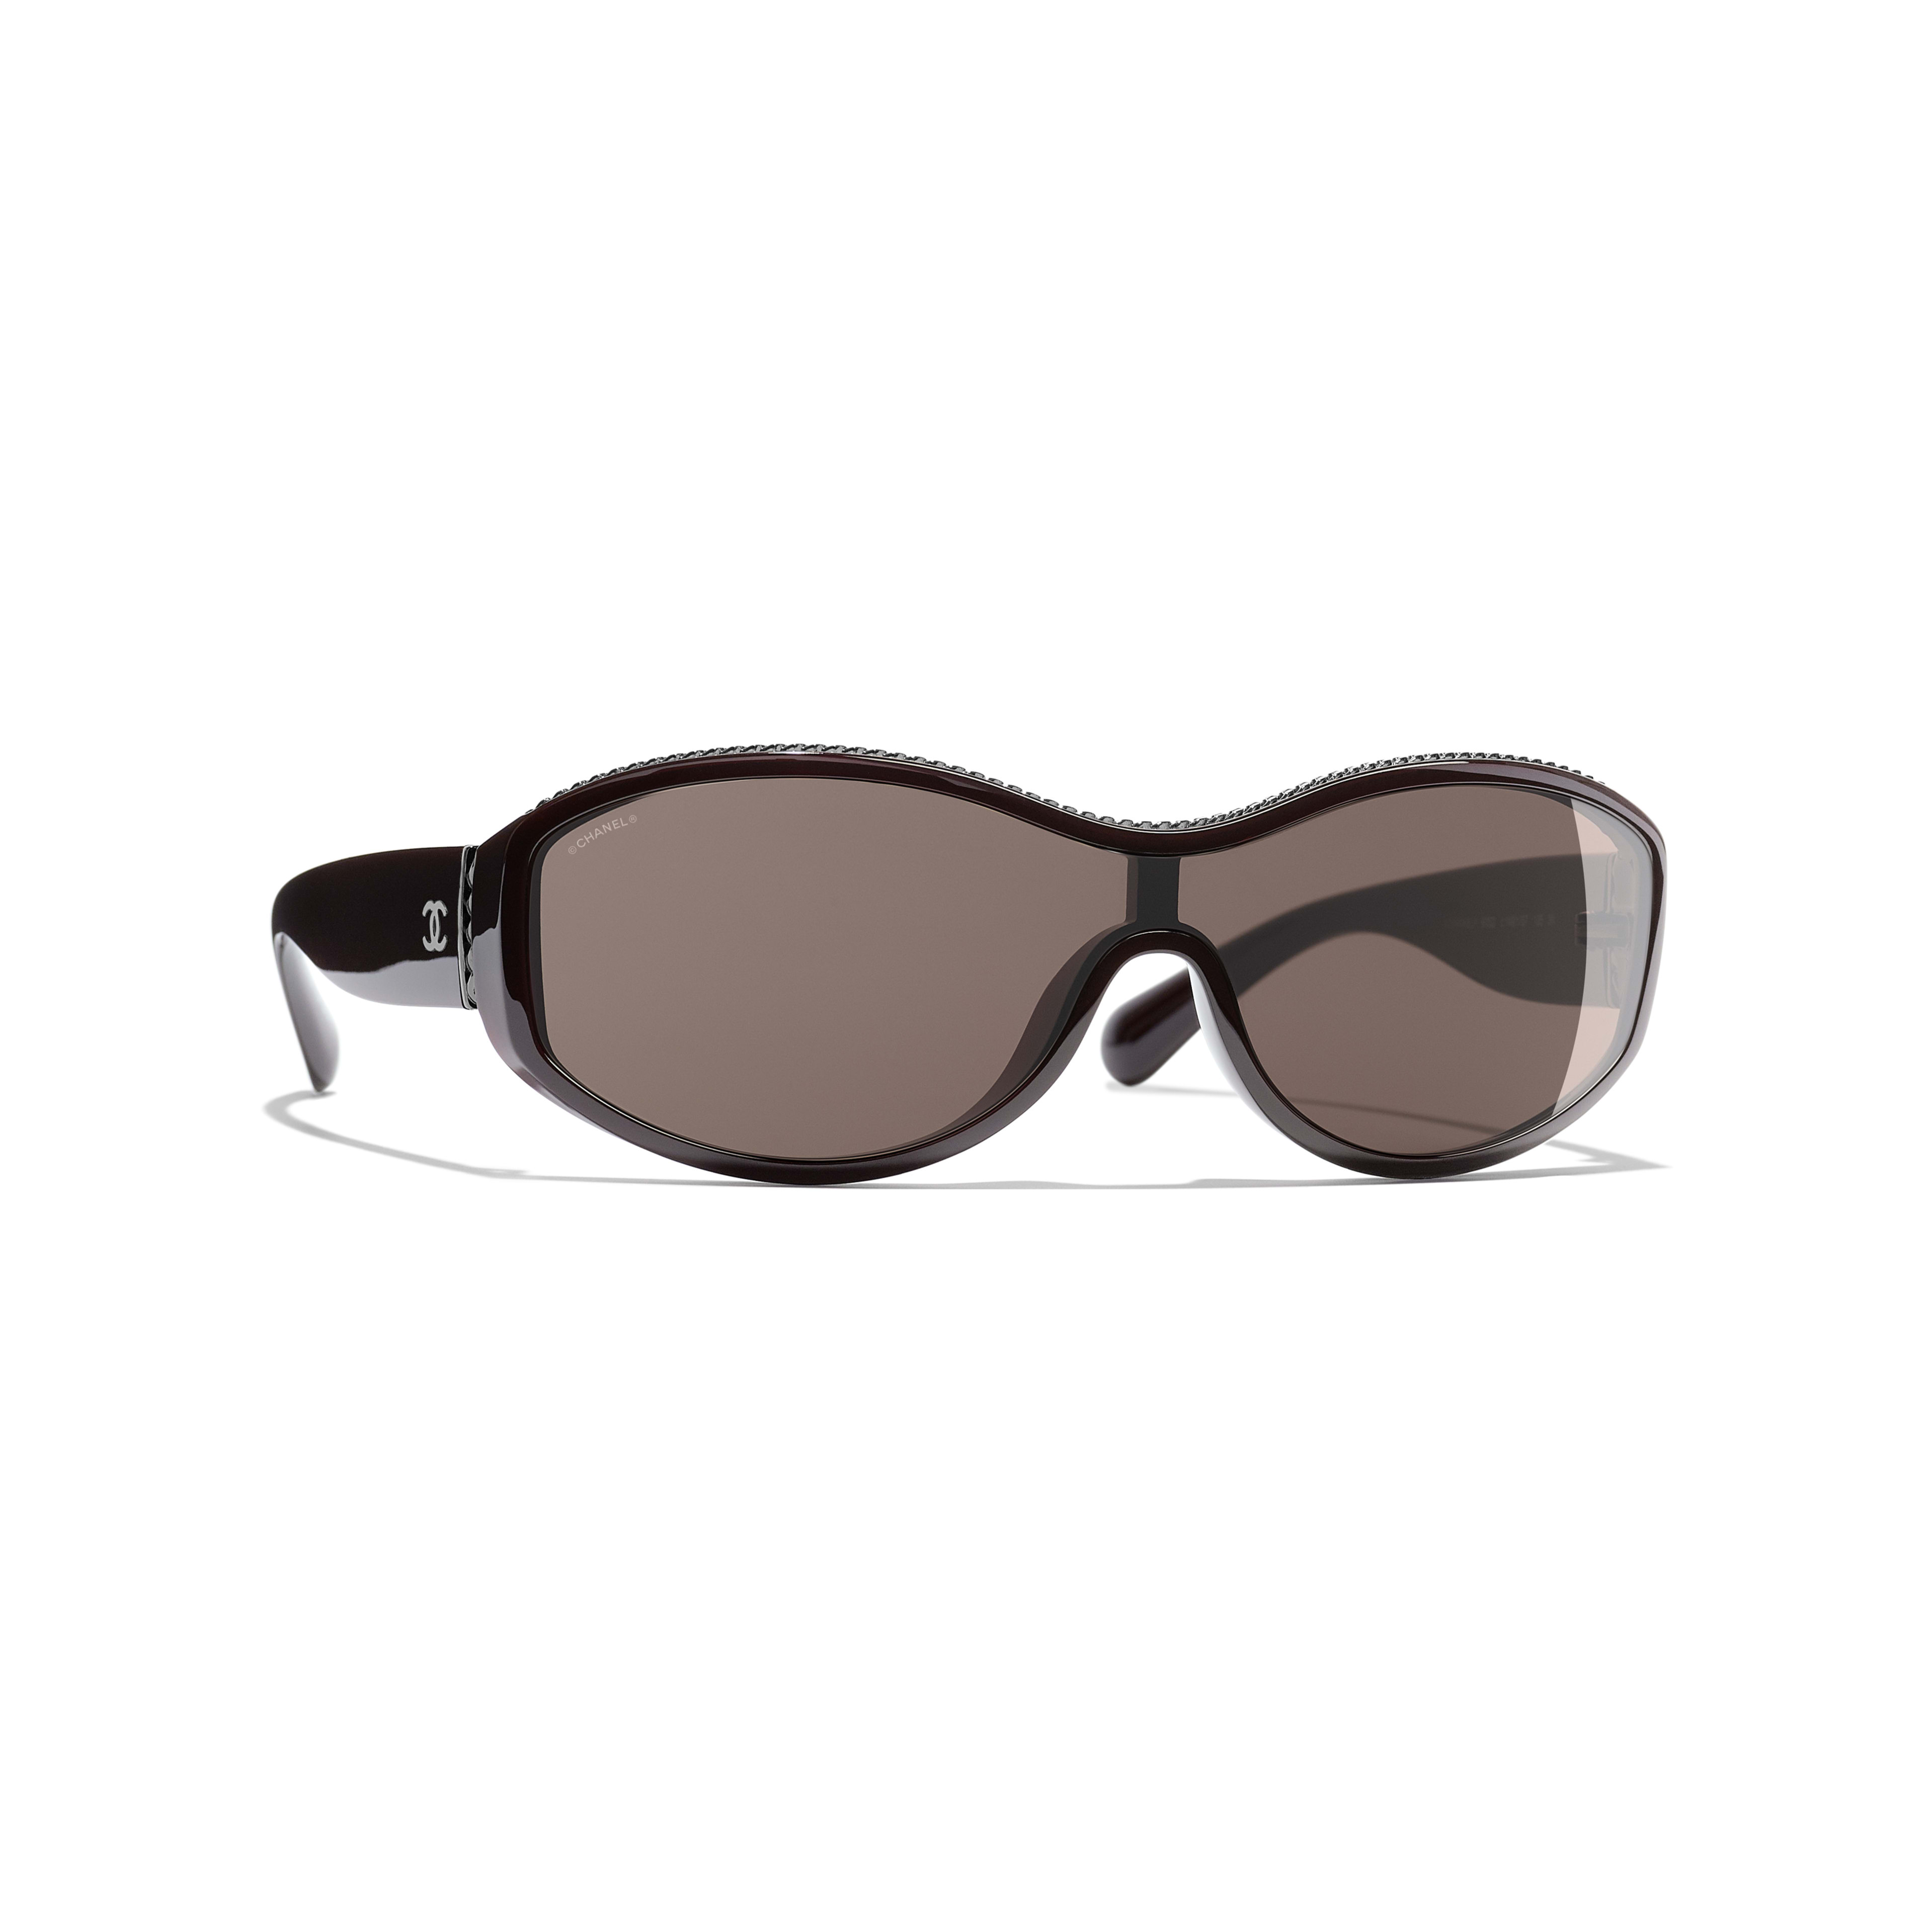 Shield Sunglasses - Burgundy - Nylon & Metal - Default view - see full sized version